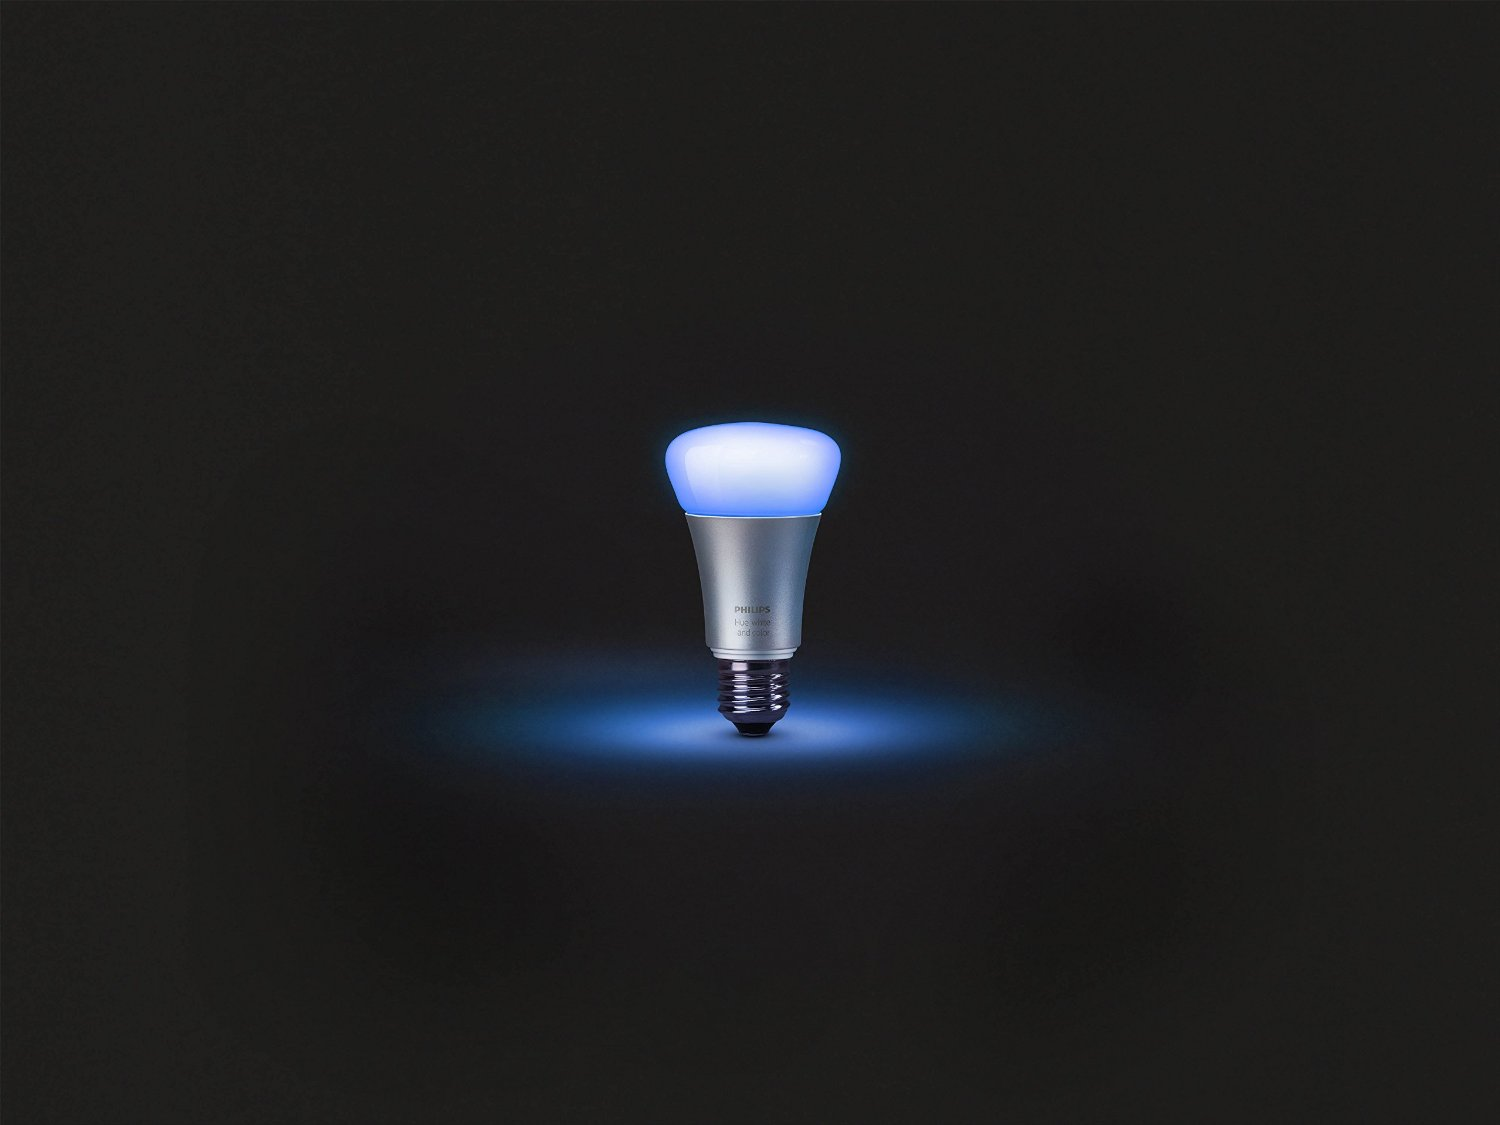 Best Smart Home Lights   Review Of Philips Hue, LIFX And More   Smart Home  Reviews